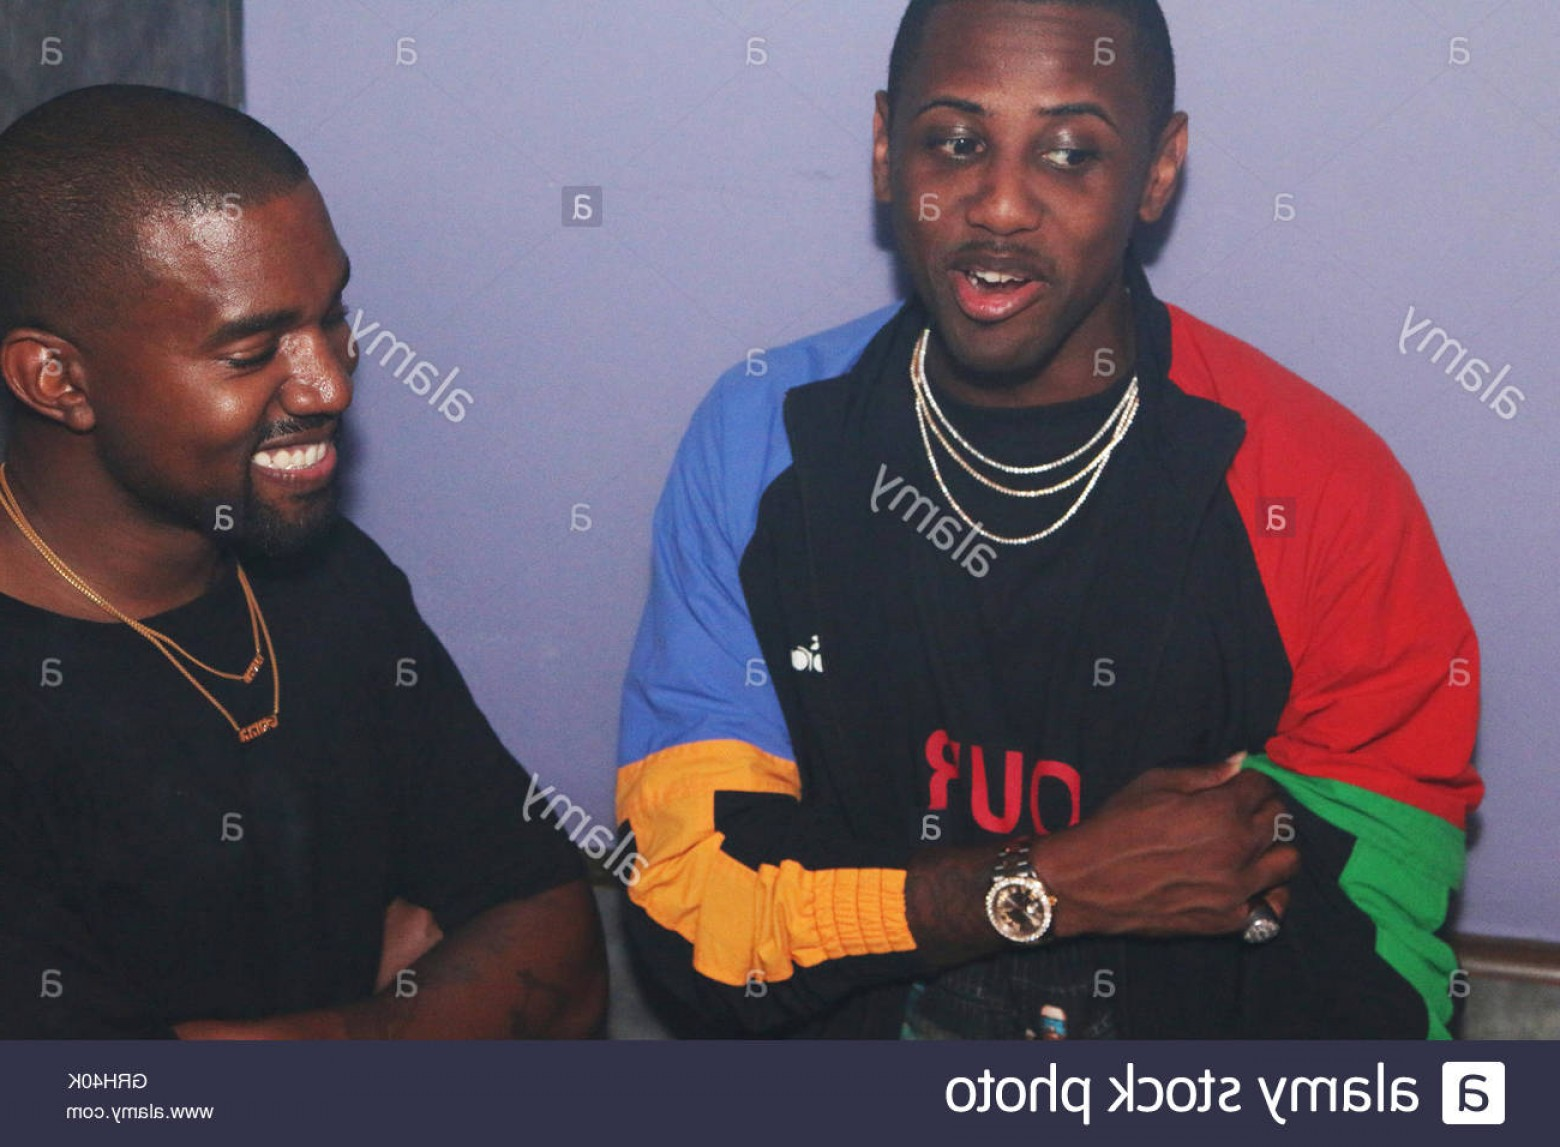 Kanye West Vector Paintig: Stock Photo New York Ny September Fabolous Kanye West Backstage At The